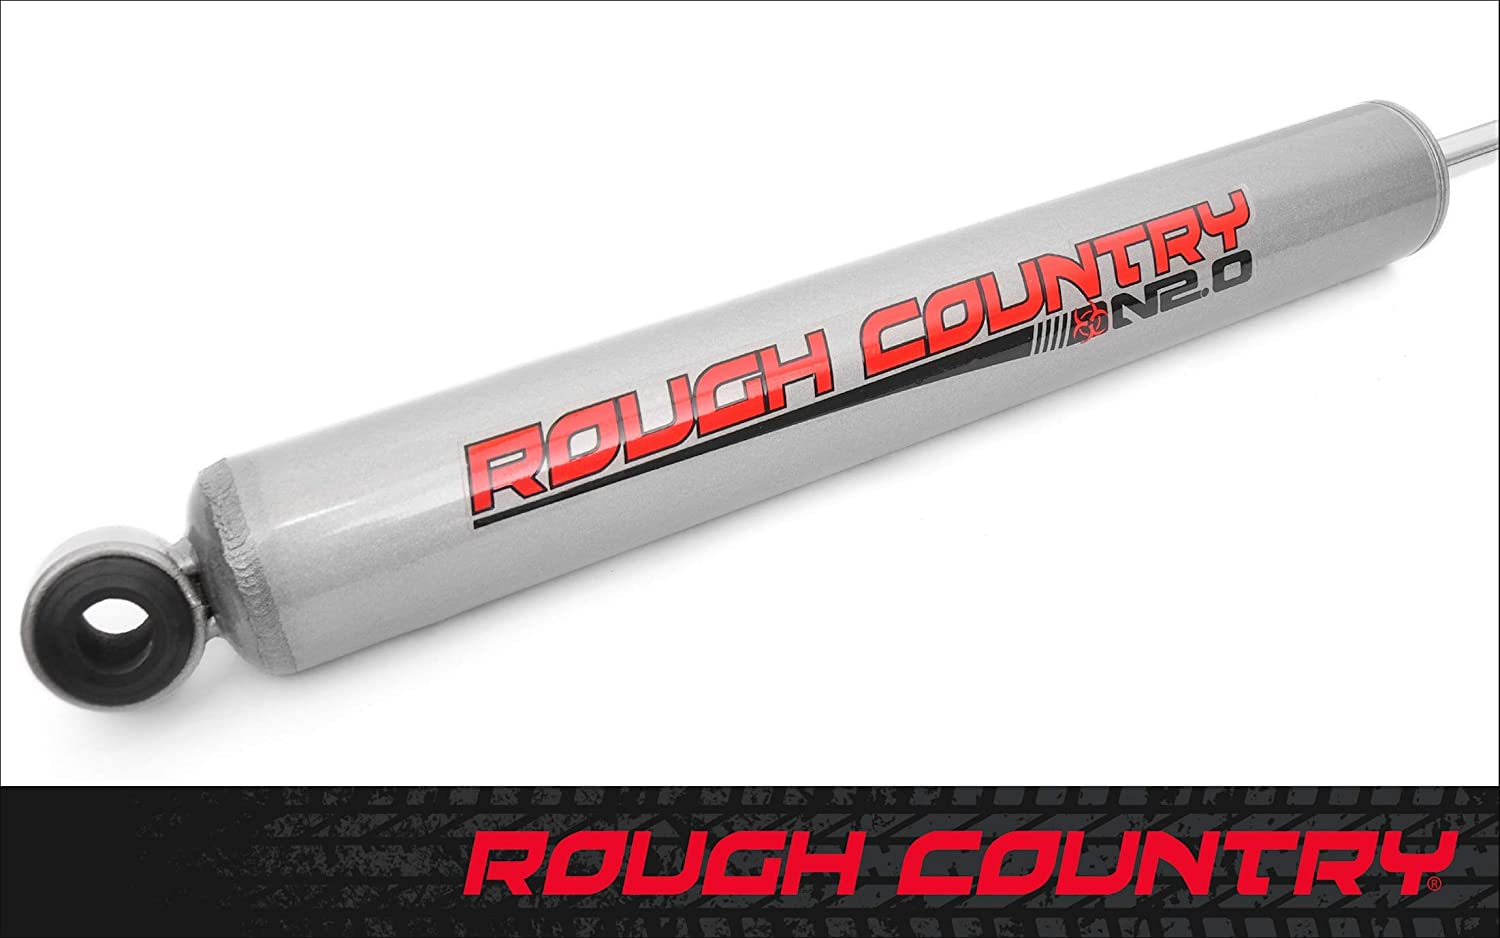 Silverado 2500 HD 2001-2010 N2.0 Rear Shock Absorber 0-3 20135 Rough Country Shock Absorber Fits Chevy